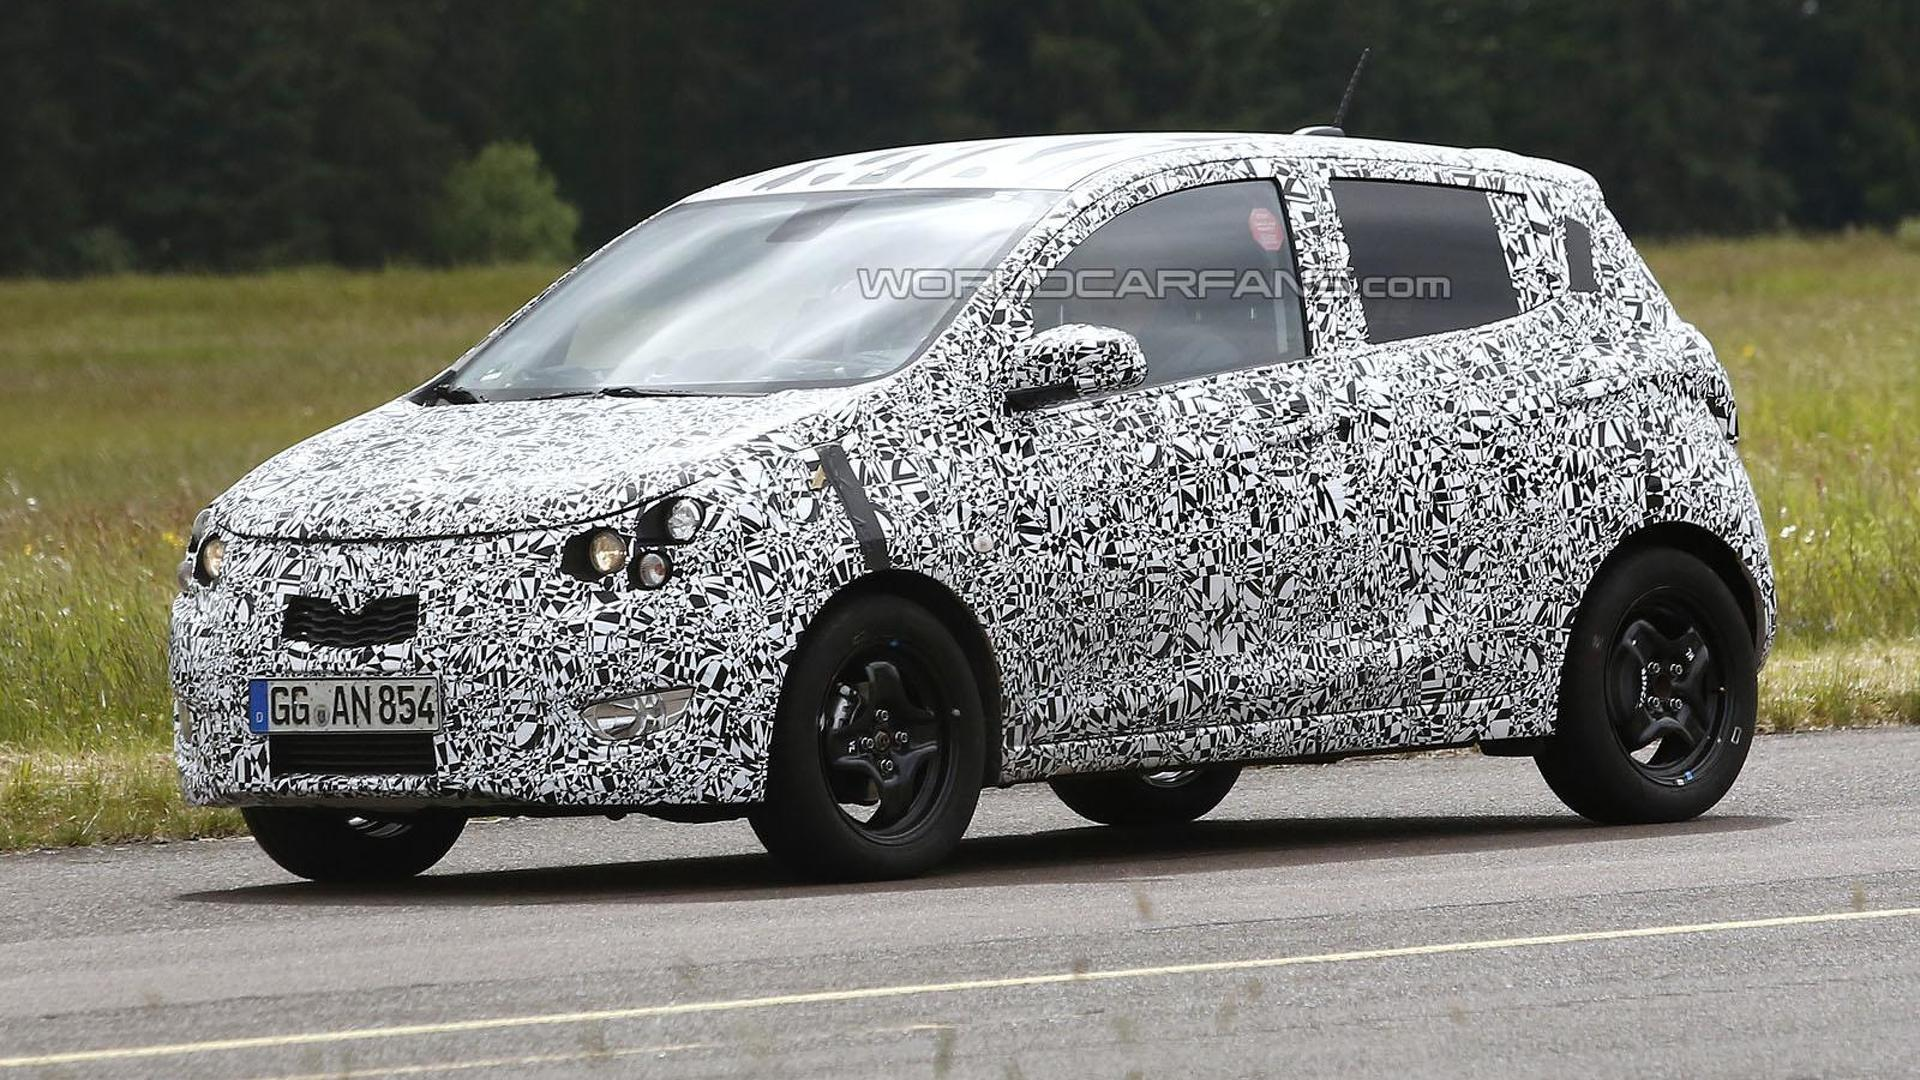 2015 Opel Agila spied with slightly sportier styling